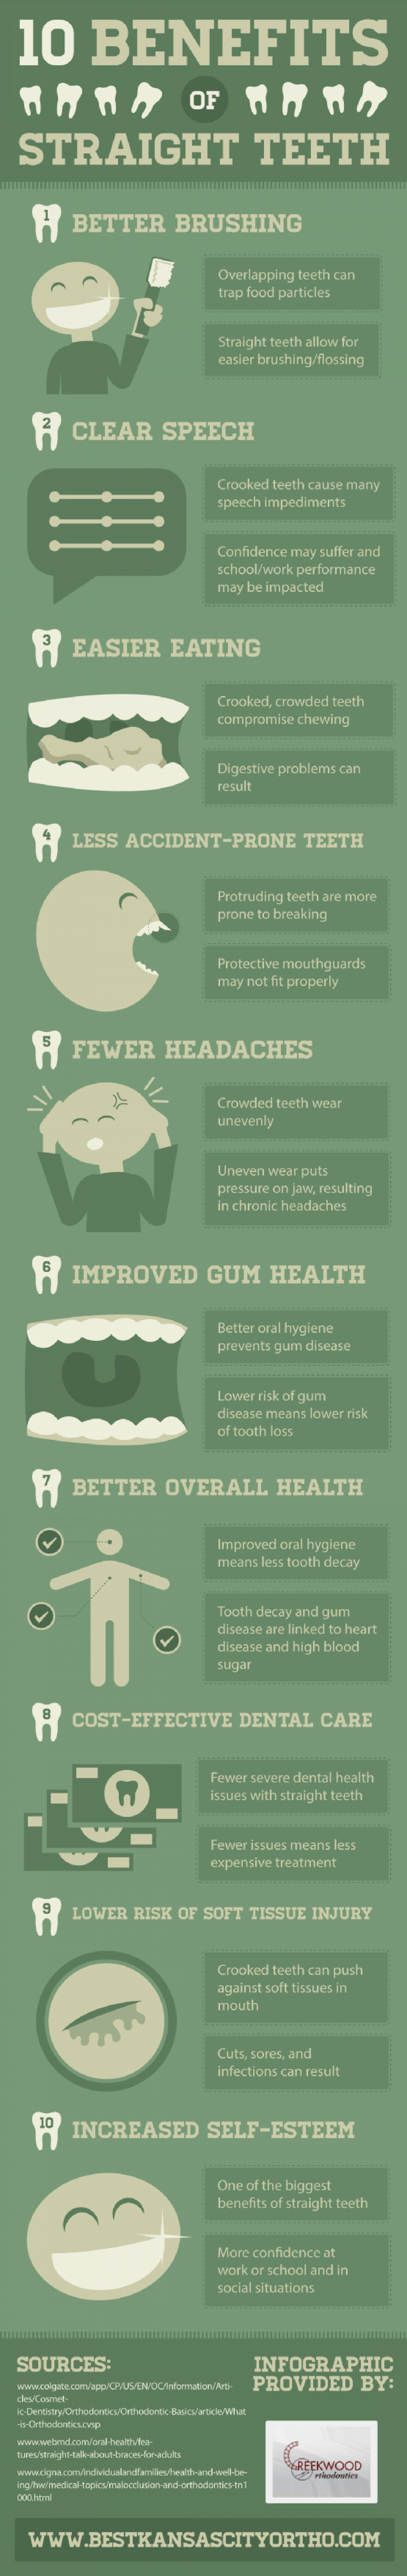 10 Benefits of Straight Teeth Infographic